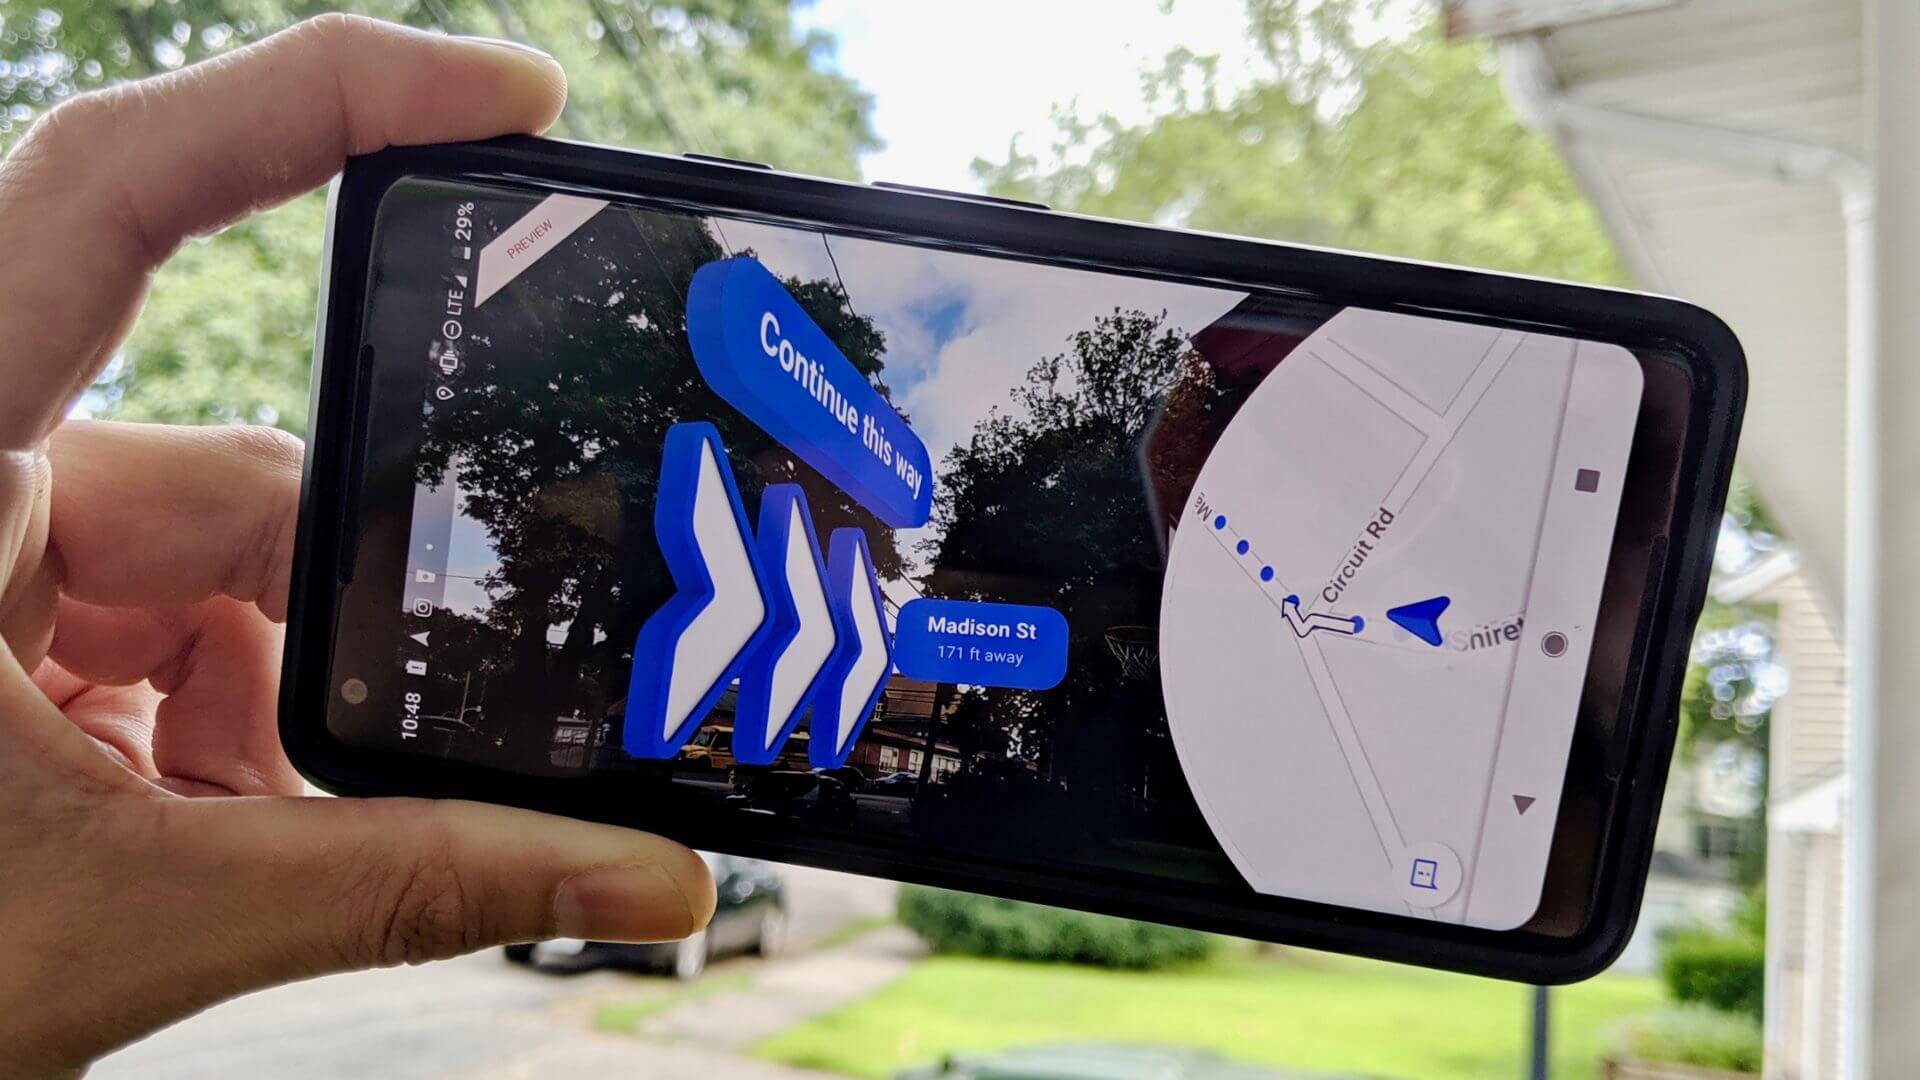 Google Maps introduces new AR navigation